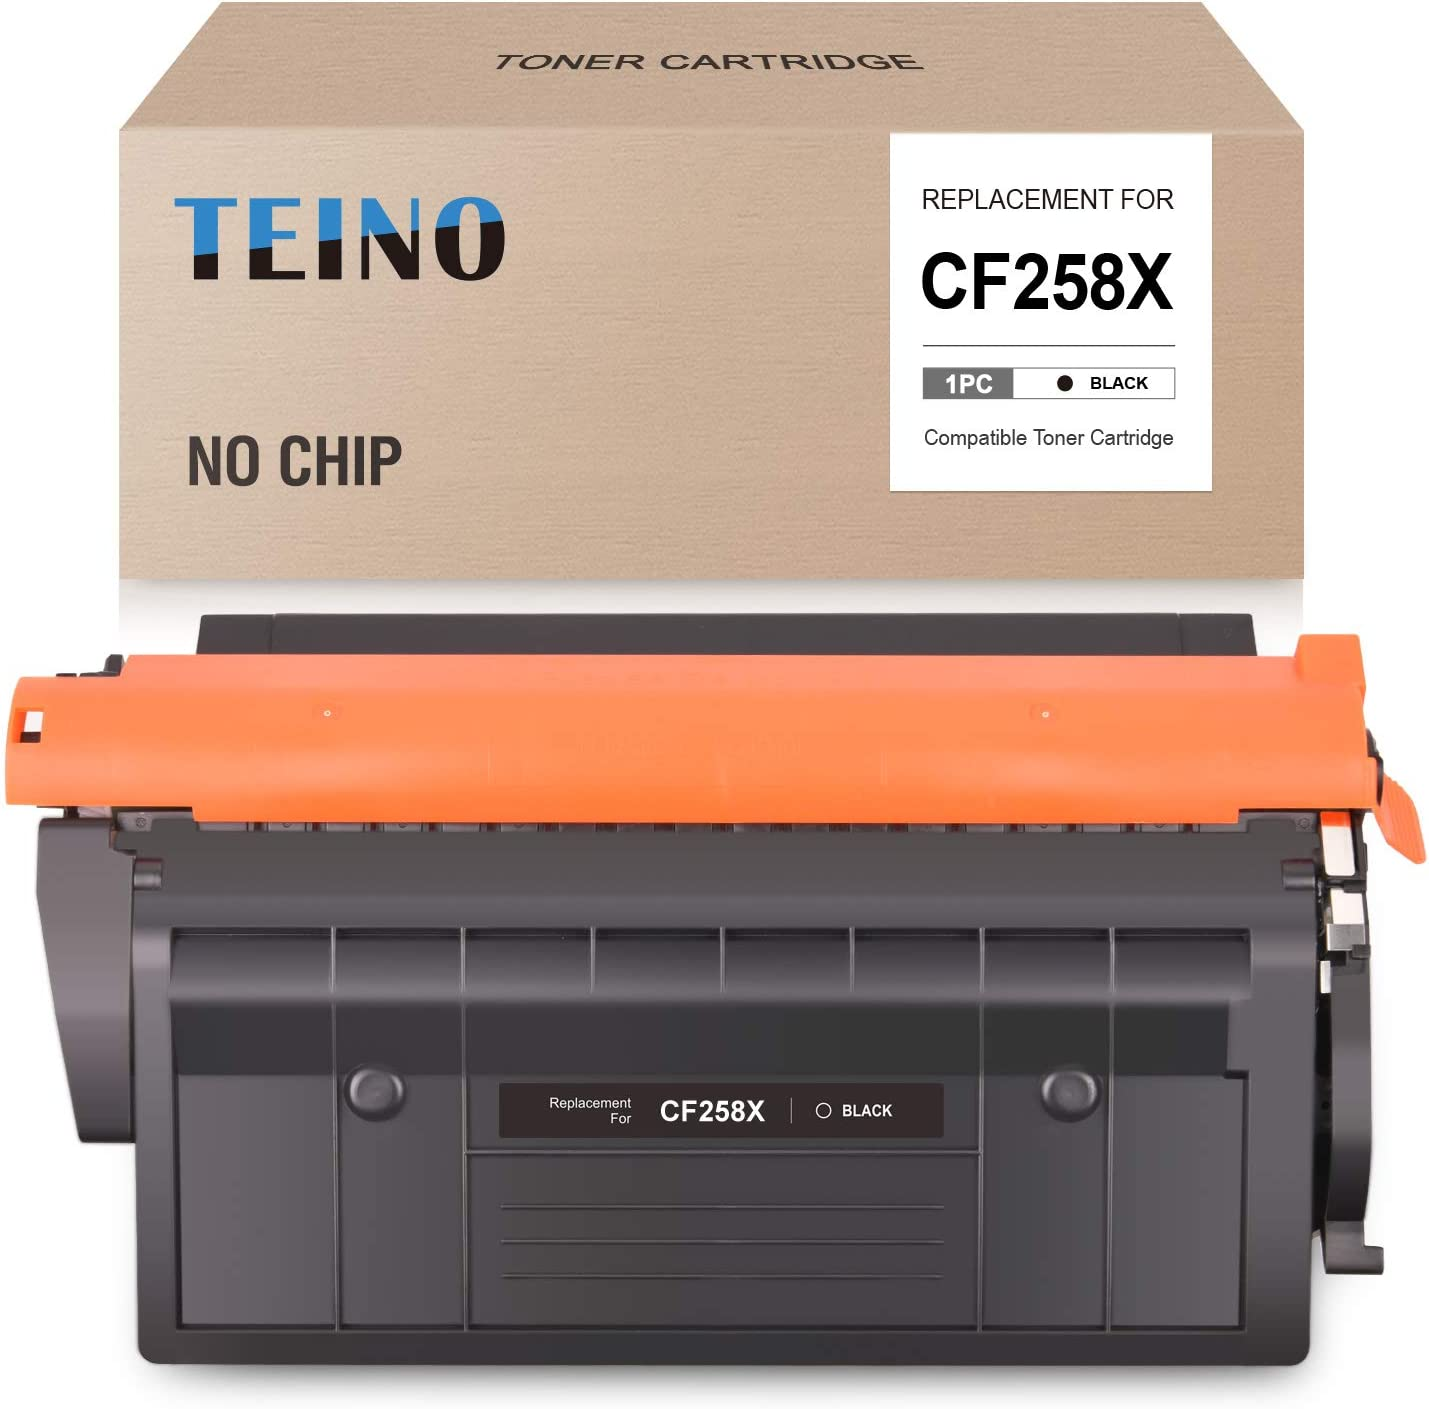 TEINO (No Chip) Compatible Toner Cartridge Replacement for HP 58X CF258X 58A CF258A use with HP Laserjet Pro M404dn M404n M404dw M304 MFP M428fdw M428fdn M428dw (Black, 1-Pack)